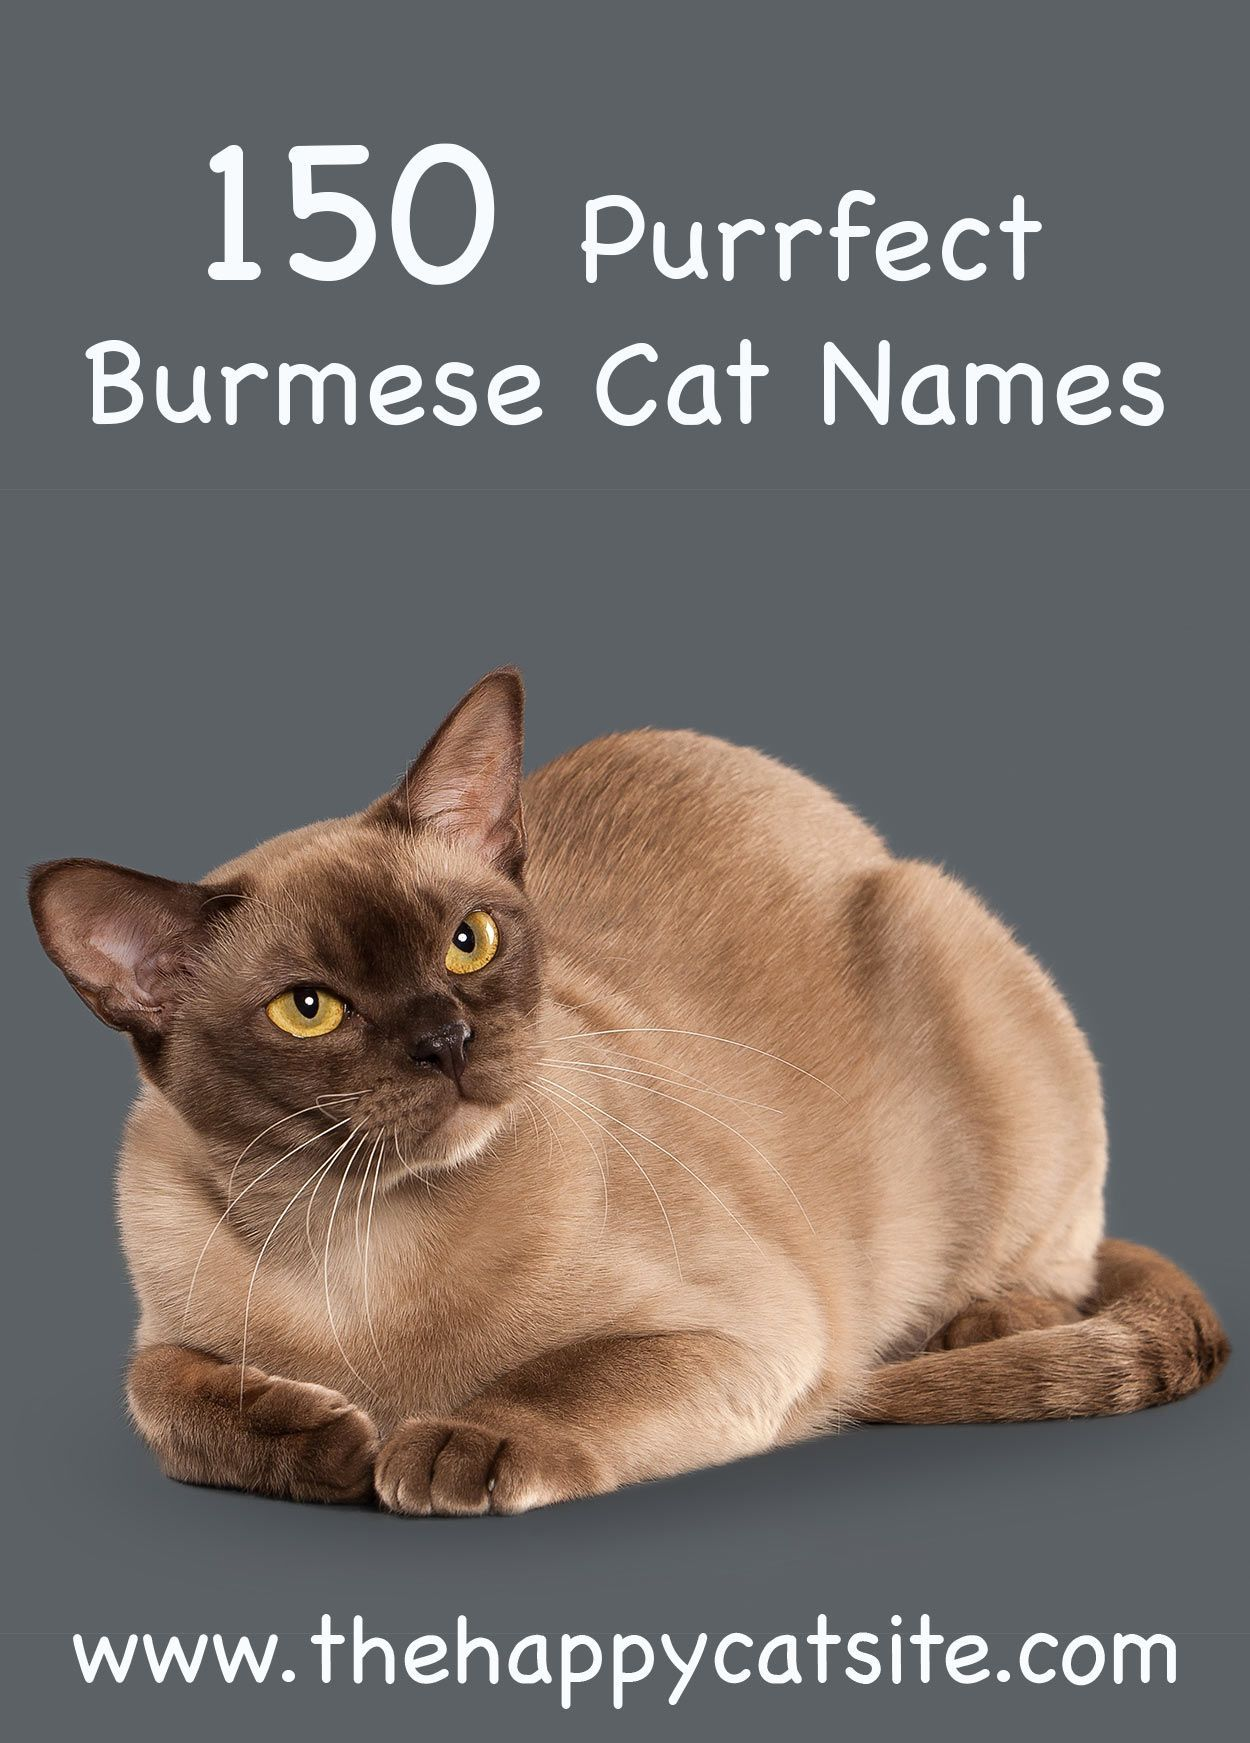 Cute Cat Names Female Unique Cuteanimals In 2020 Burmese Cat Cat Names Cute Cat Names